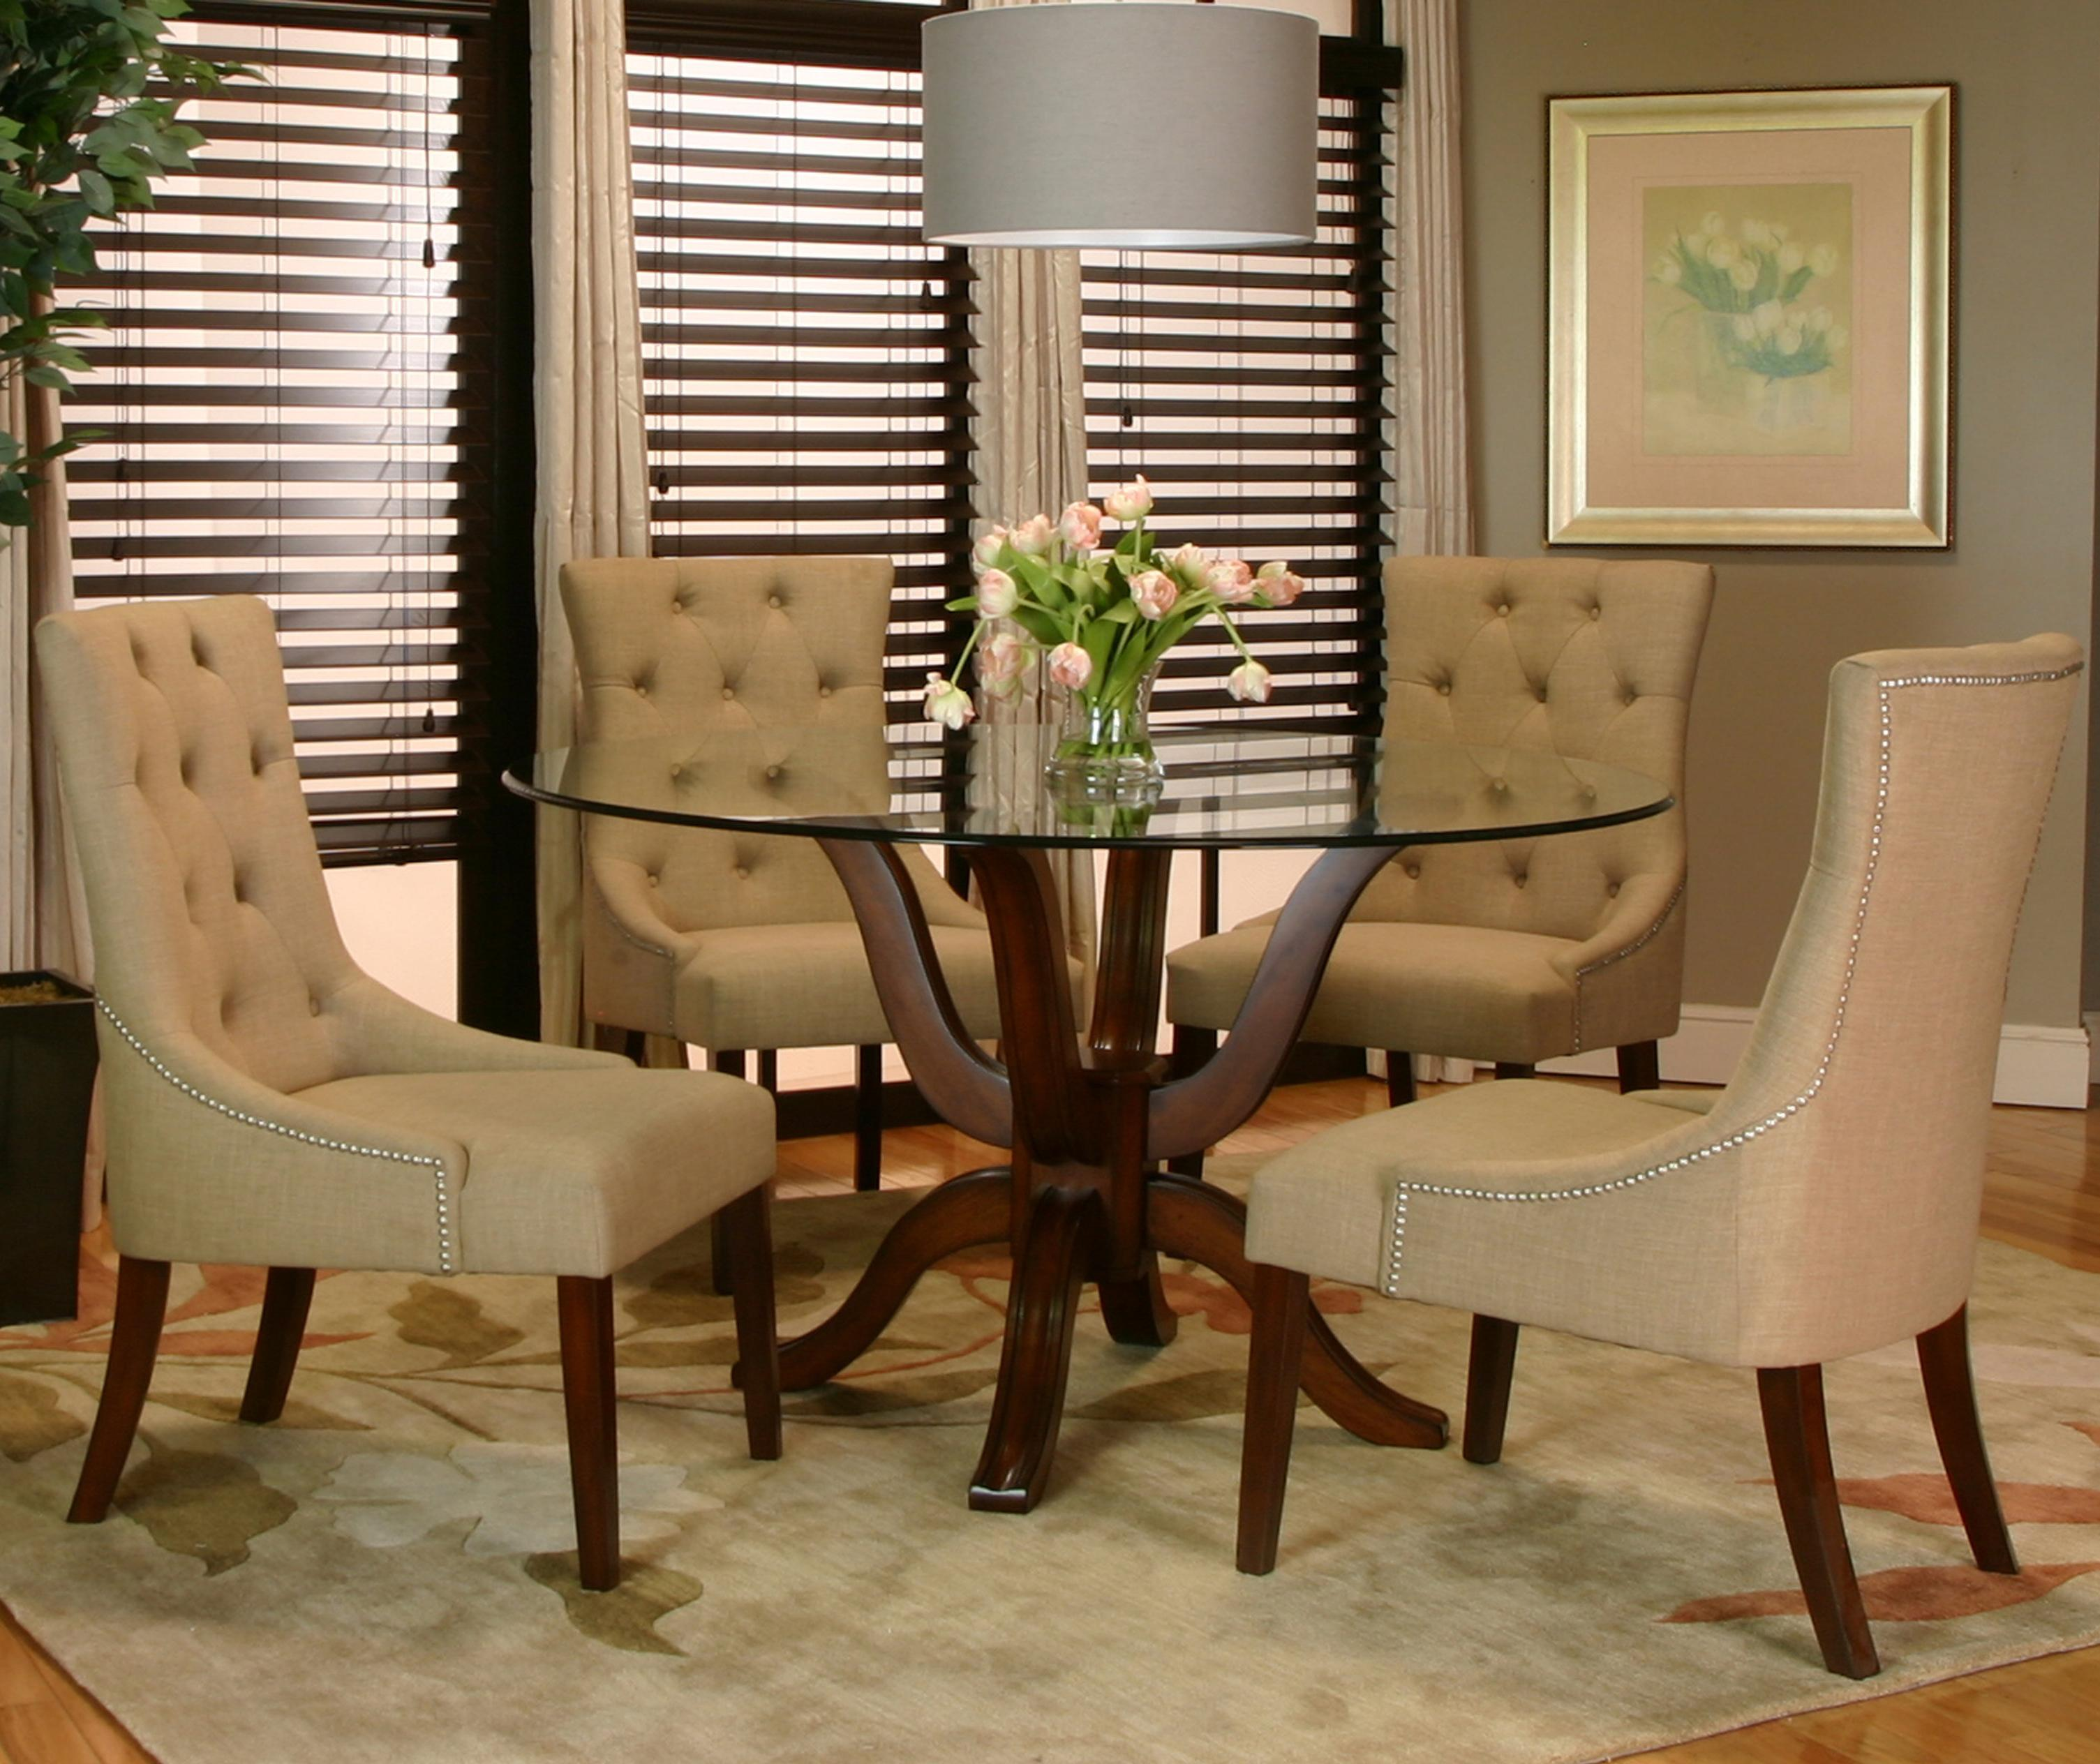 4 Leather Dining Room Chairs. Room Leather Dining And. Dining Room ...